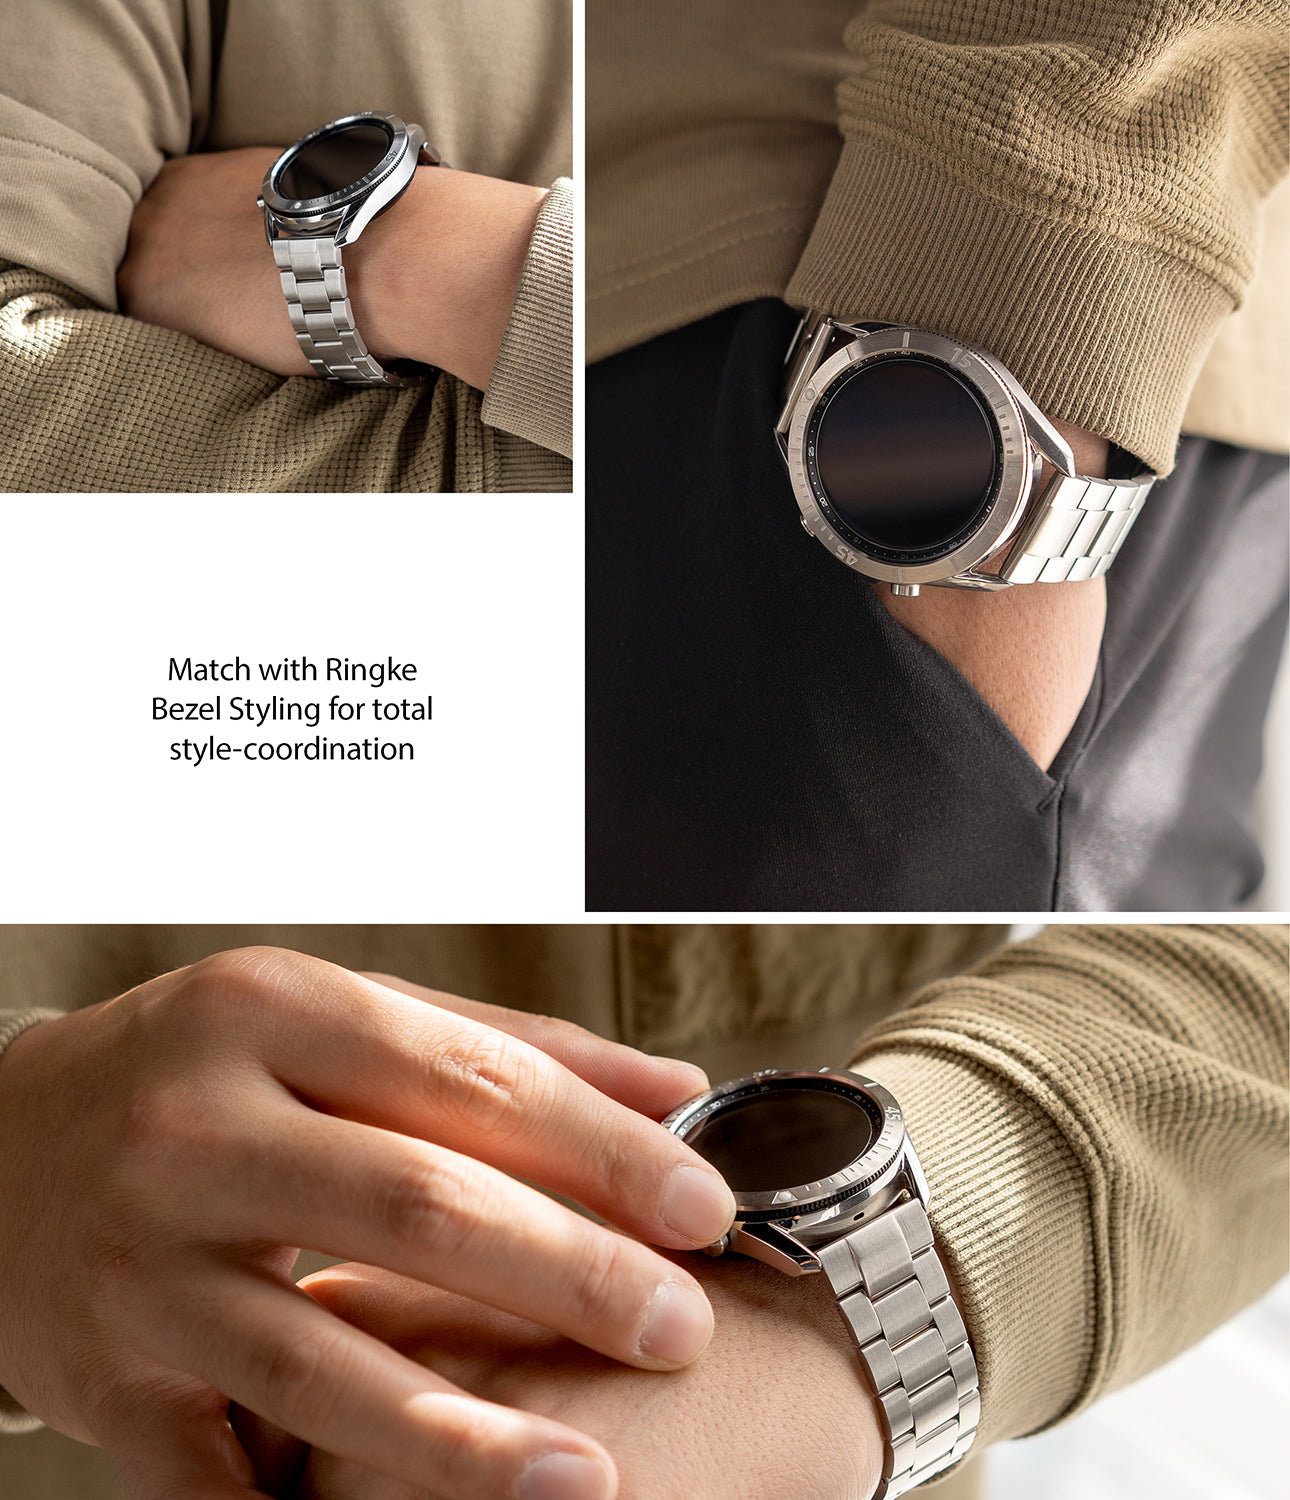 match with ringke bezel styling for total style-coordination